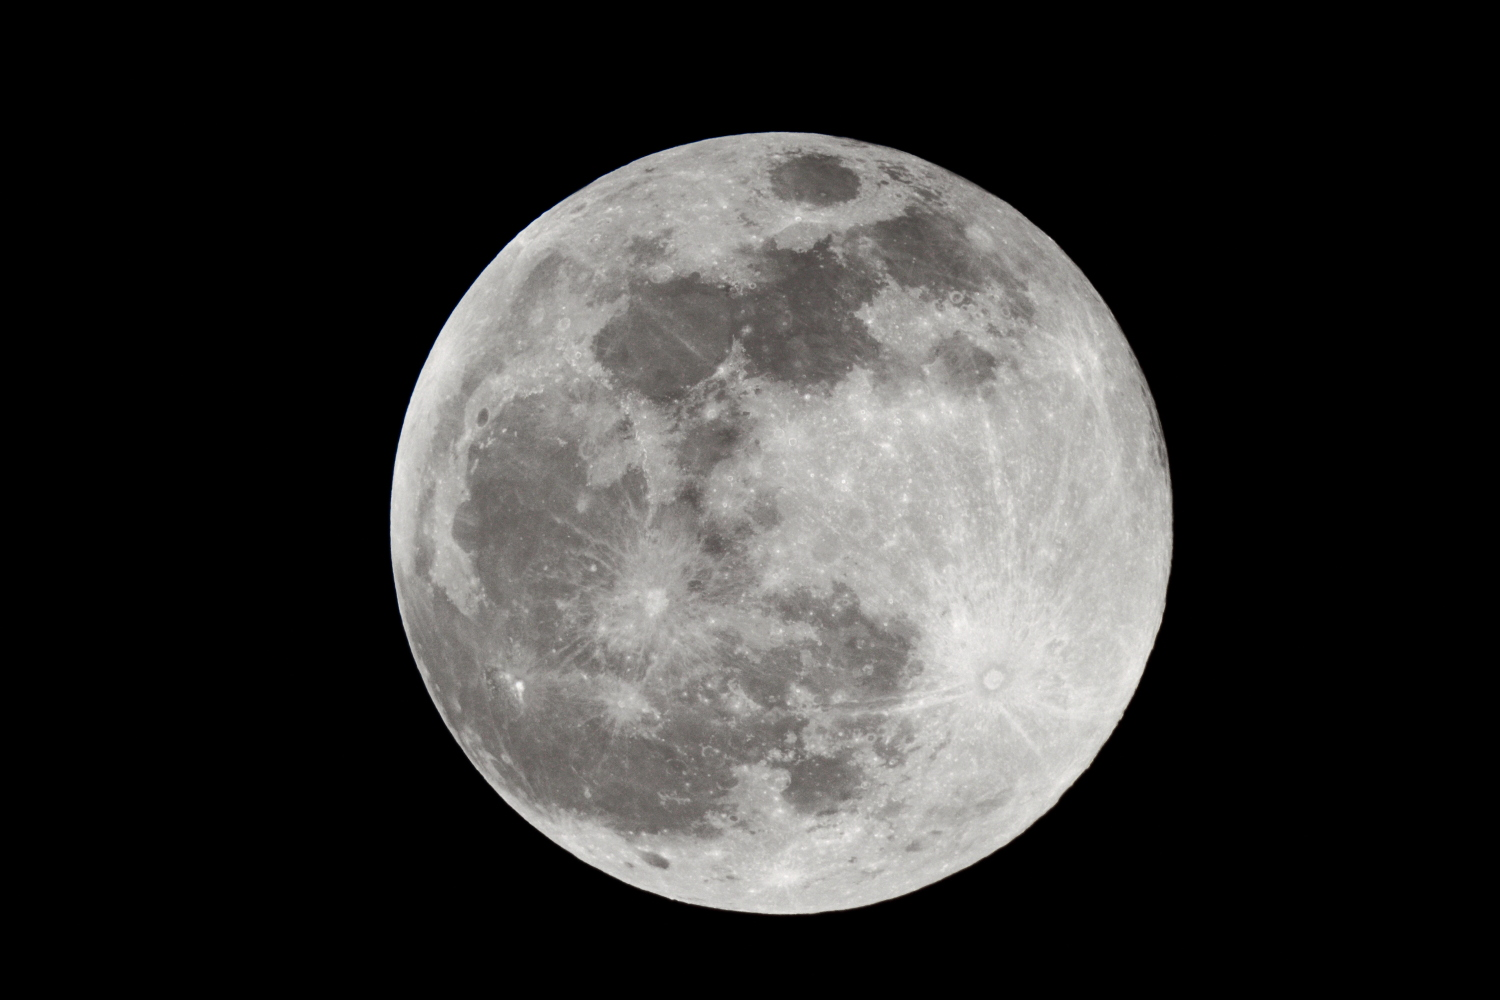 Full moon in summer!    Single shot at 1/1000 s - ISO 100 - @ 1920 mm - EOS 1200D + Dobson SkyWatcher 250/1200 f/5 - Mac OS + Canon DPP 4 -5184x3456 px. Domagnano, Rep. of San Marino, 29 August 2015.